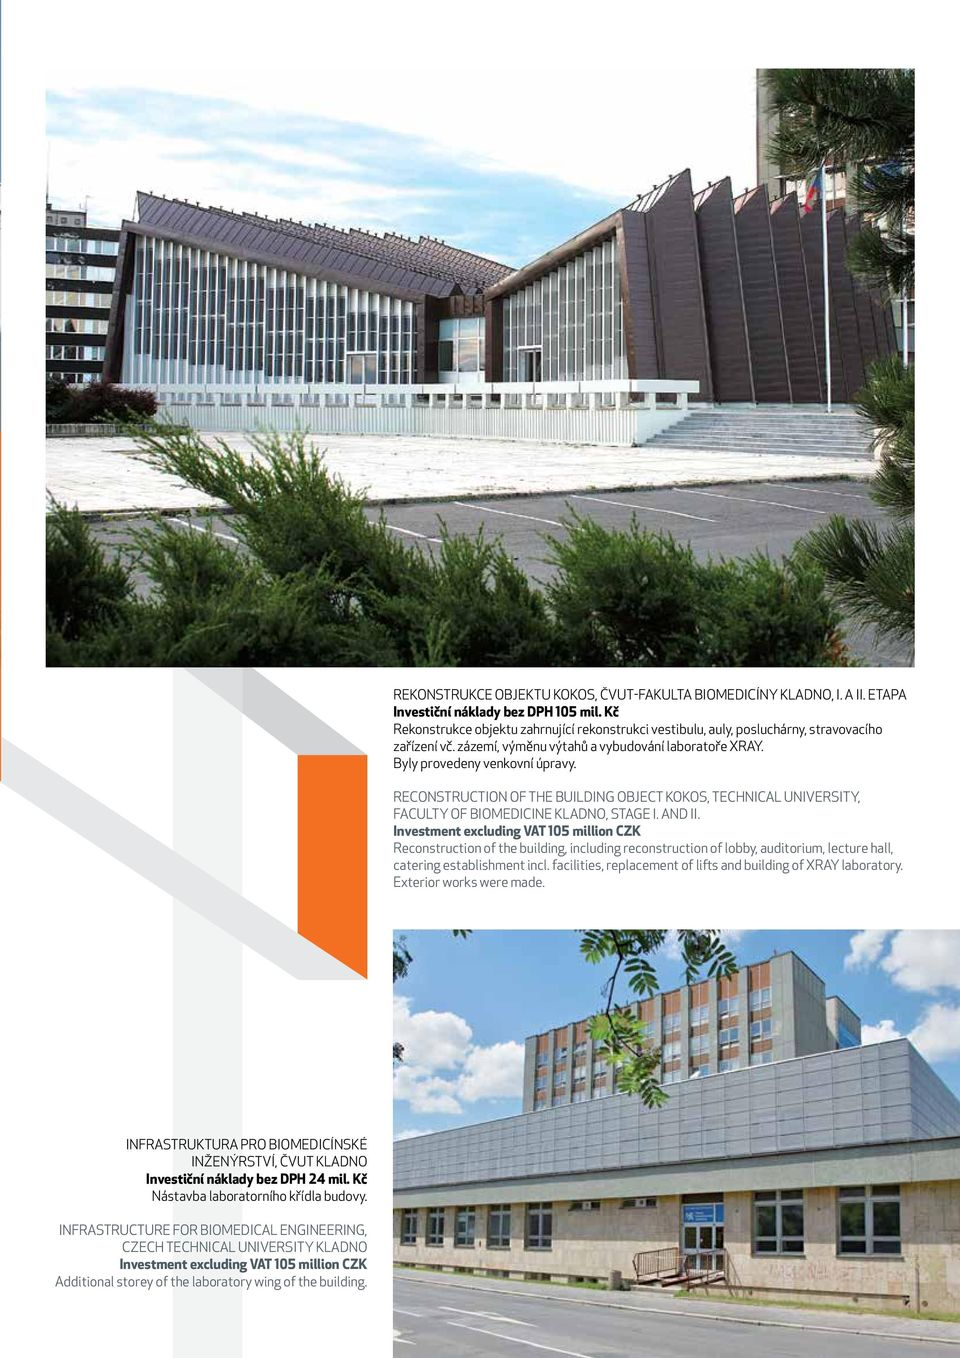 RECONSTRUCTION OF THE BUILDING OBJECT KOKOS, TECHNICAL UNIVERSITY, FACULTY OF BIOMEDICINE KLADNO, STAGE I. AND II.